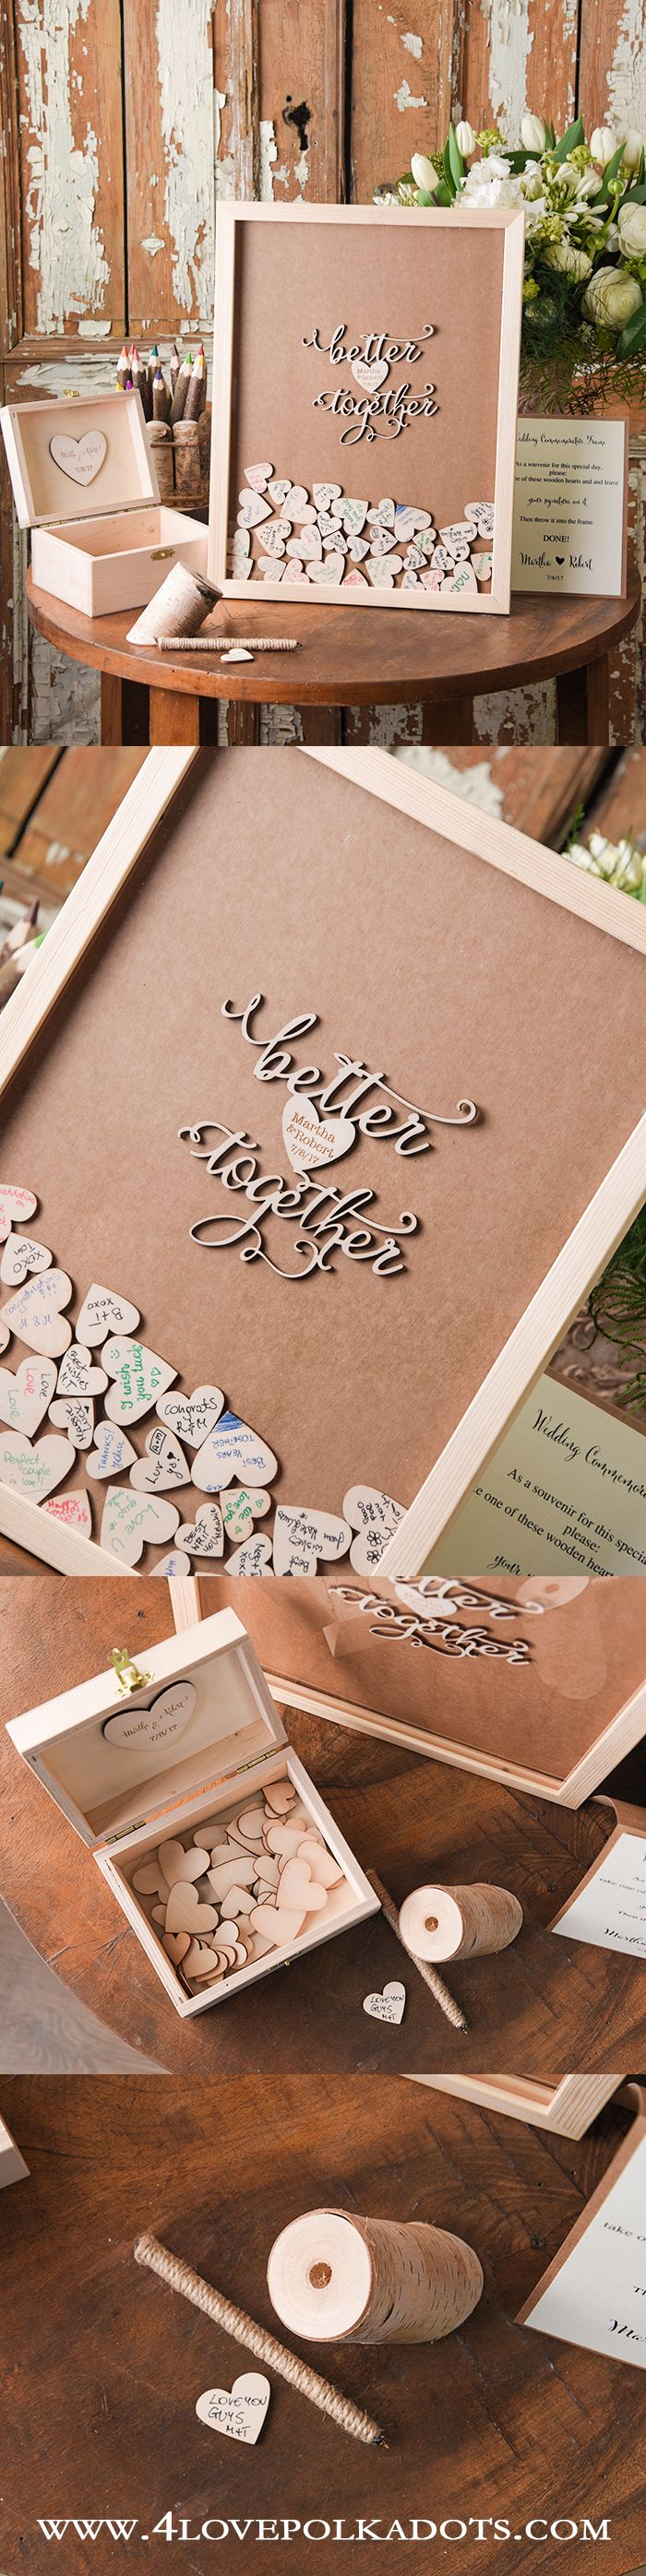 Alternative Wedding Guest Book #weddingguestbook